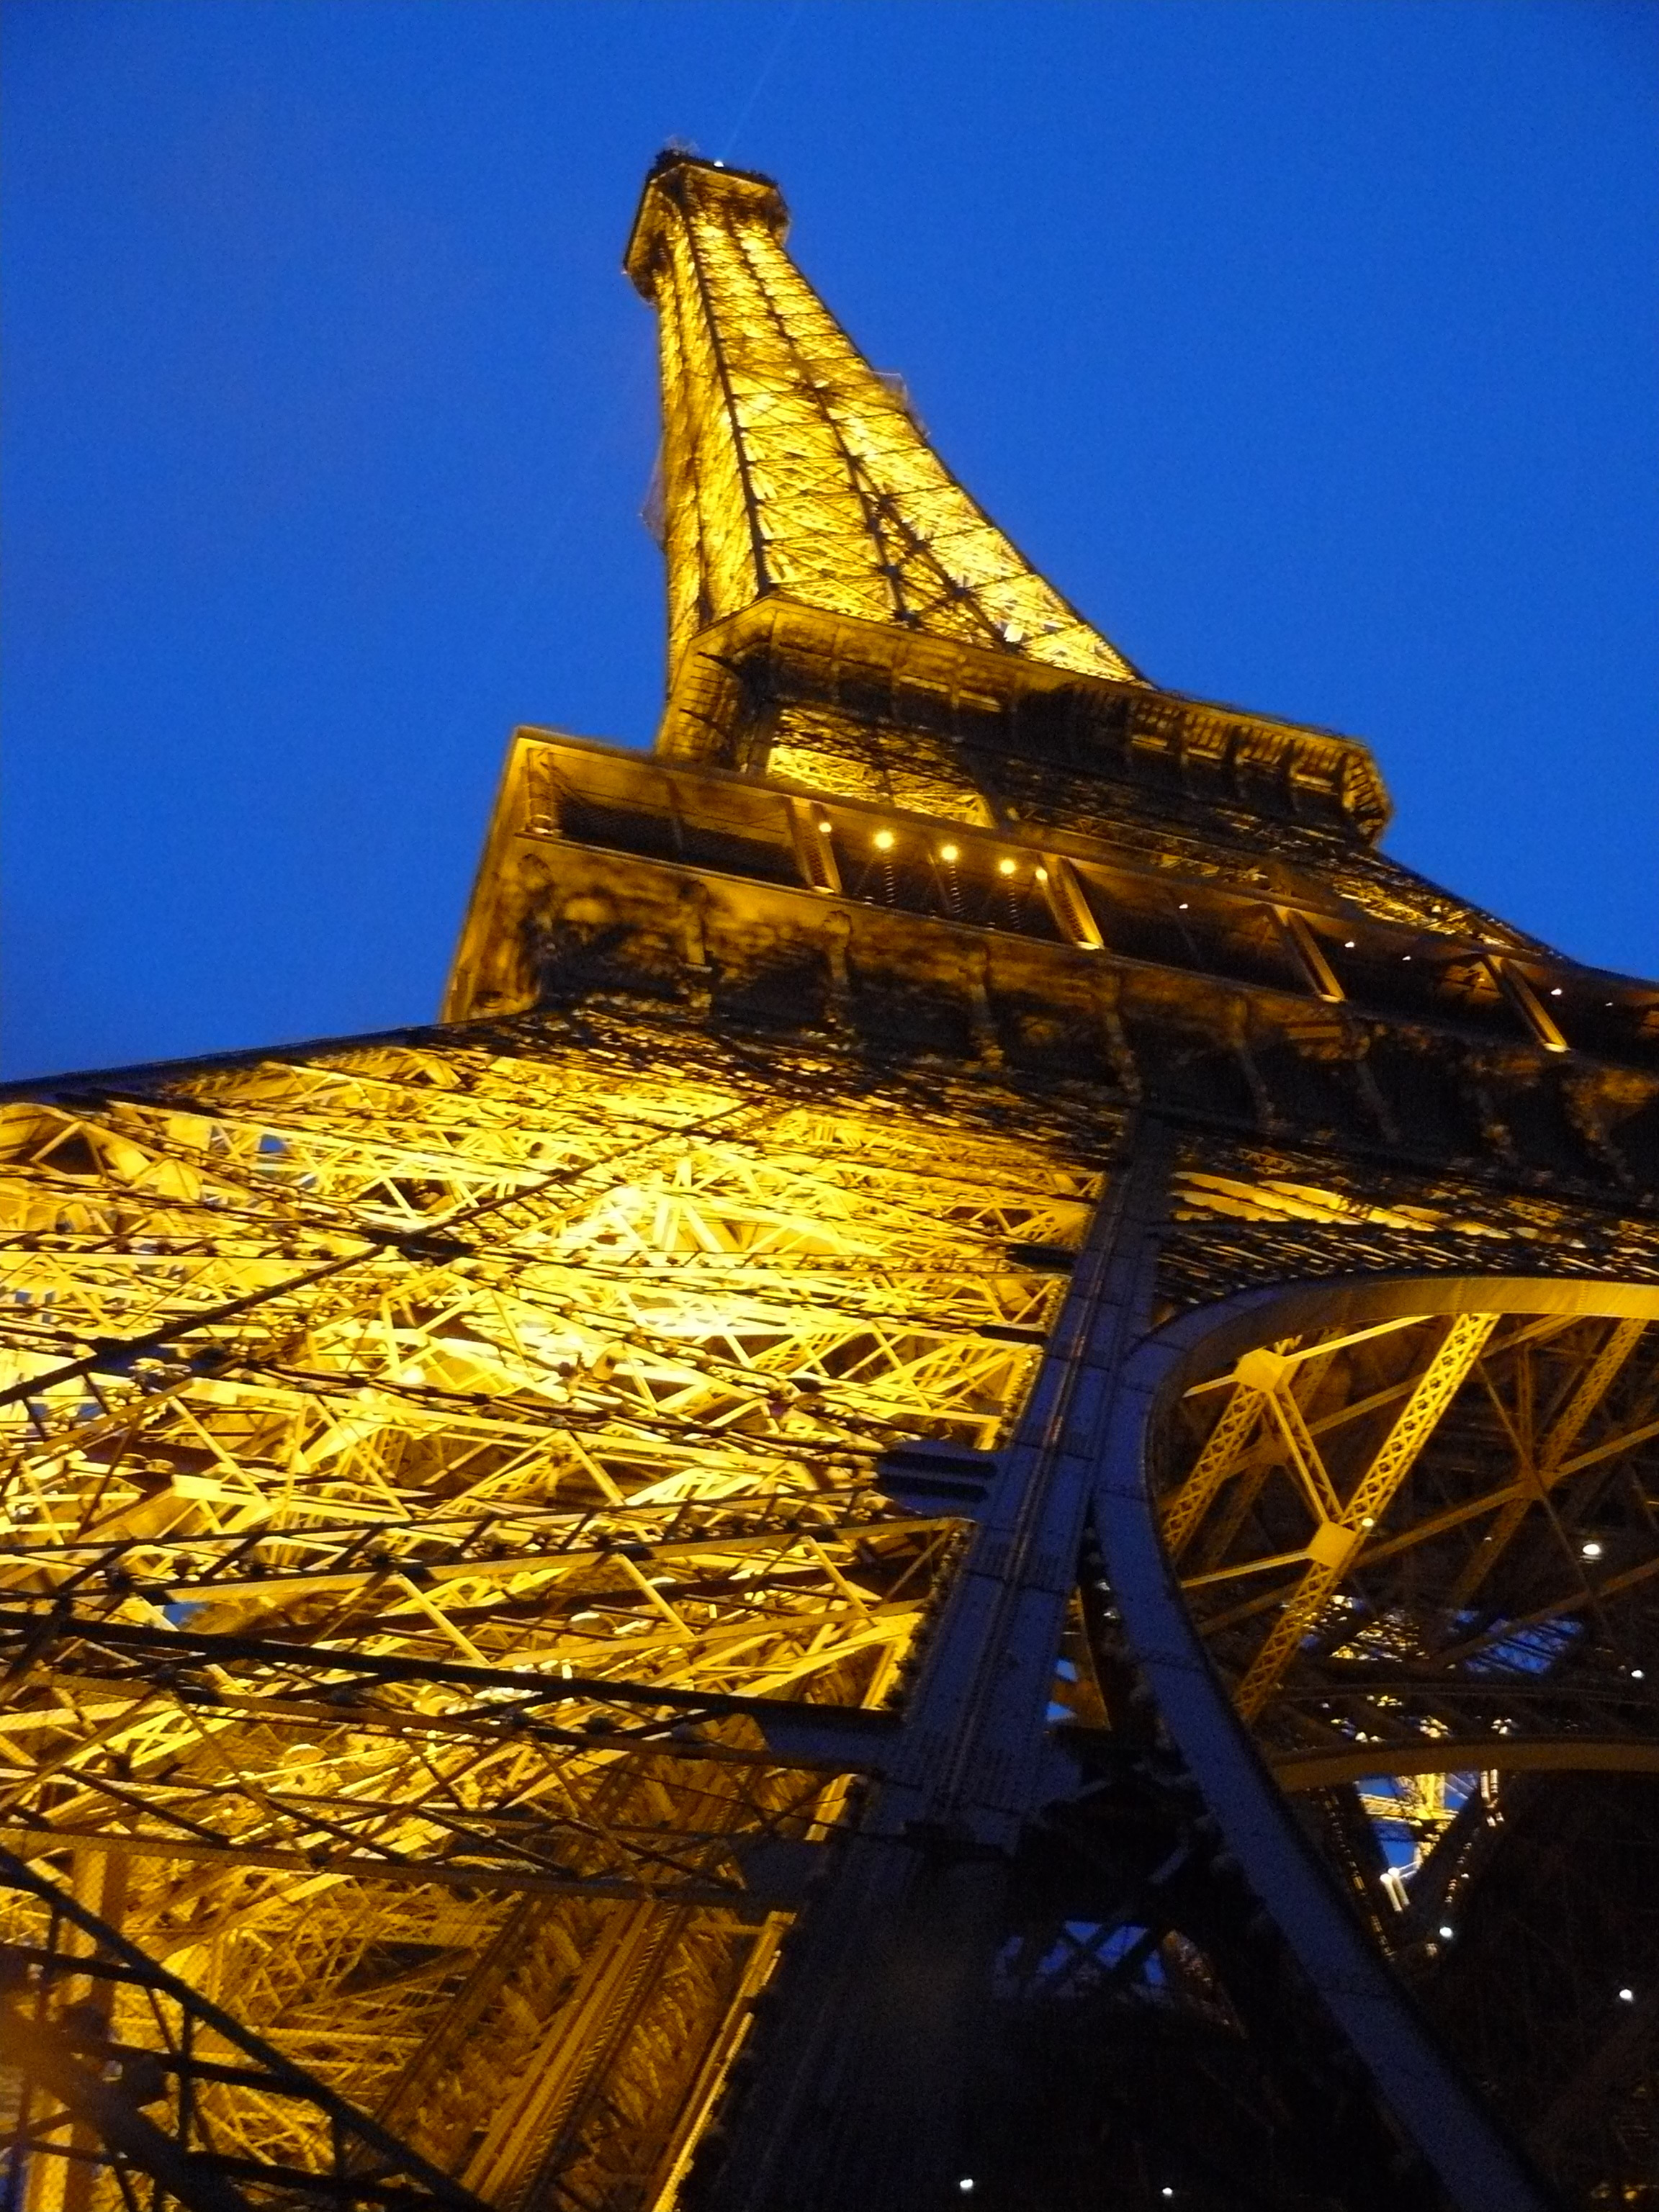 Back down from the Eiffel Tower at dusk.